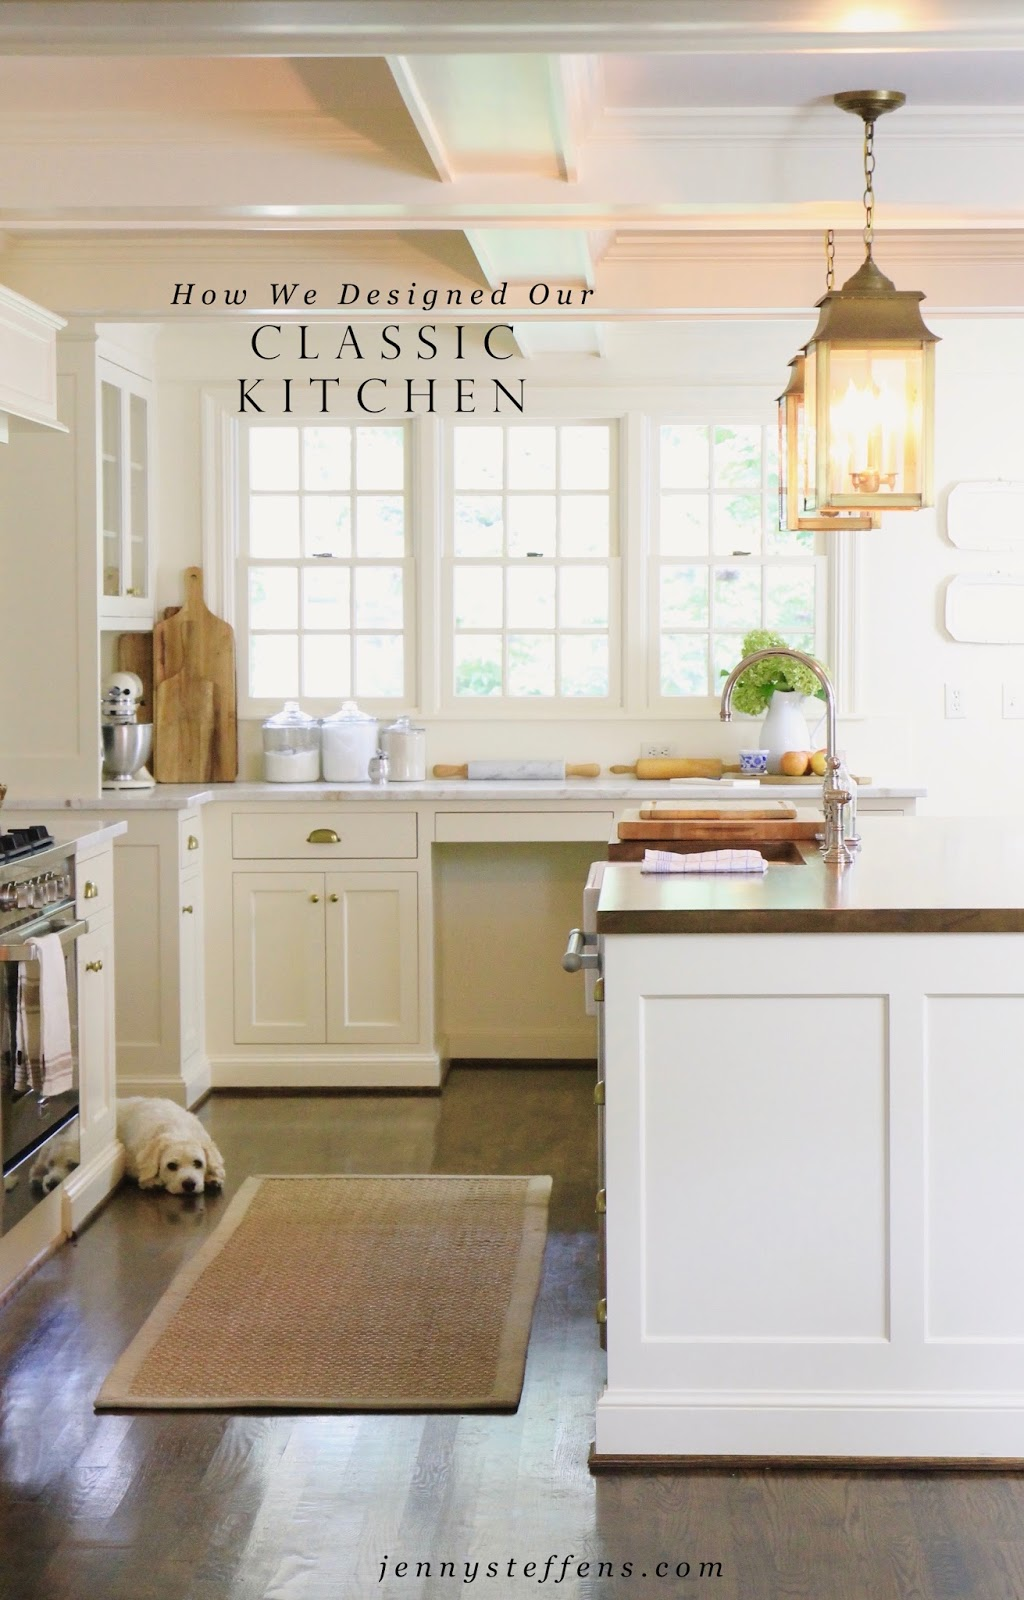 Our Classic White Kitchen Design Marble Countertops Wood Island Top Brass Pulls Lanterns Jenny Steffens Hobick,Pantone Color Palette Summer 2020